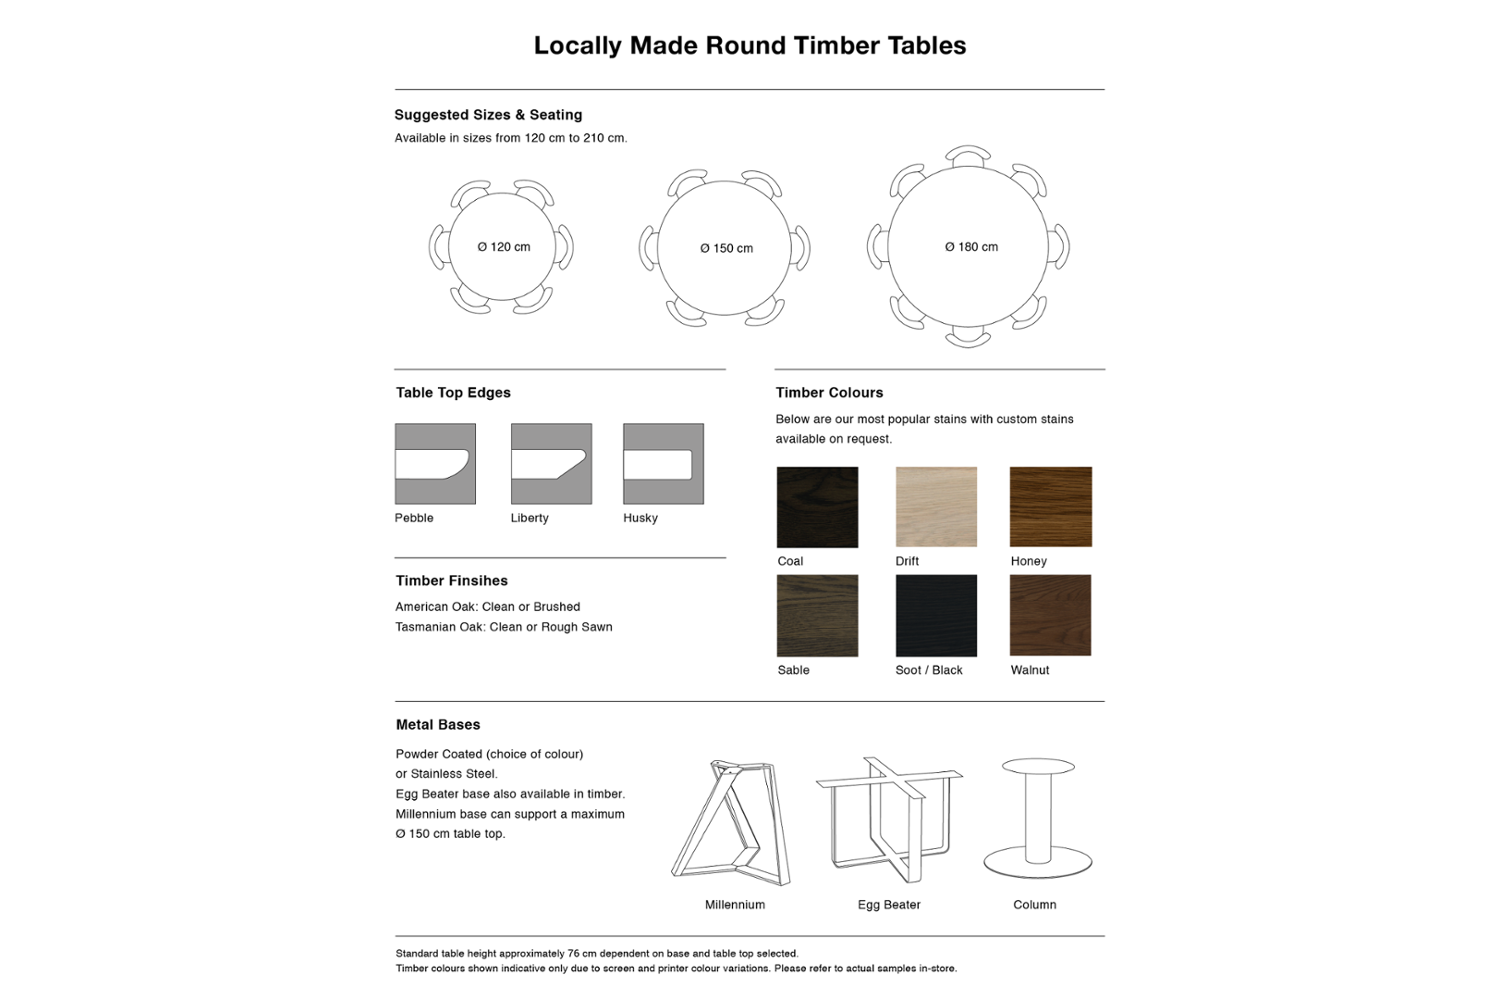 LOCALLY MADE ROUND TABLE OPTIONS FA2 web 01 LOCALLY-MADE-ROUND-TABLE-OPTIONS-FA2_web-01.png